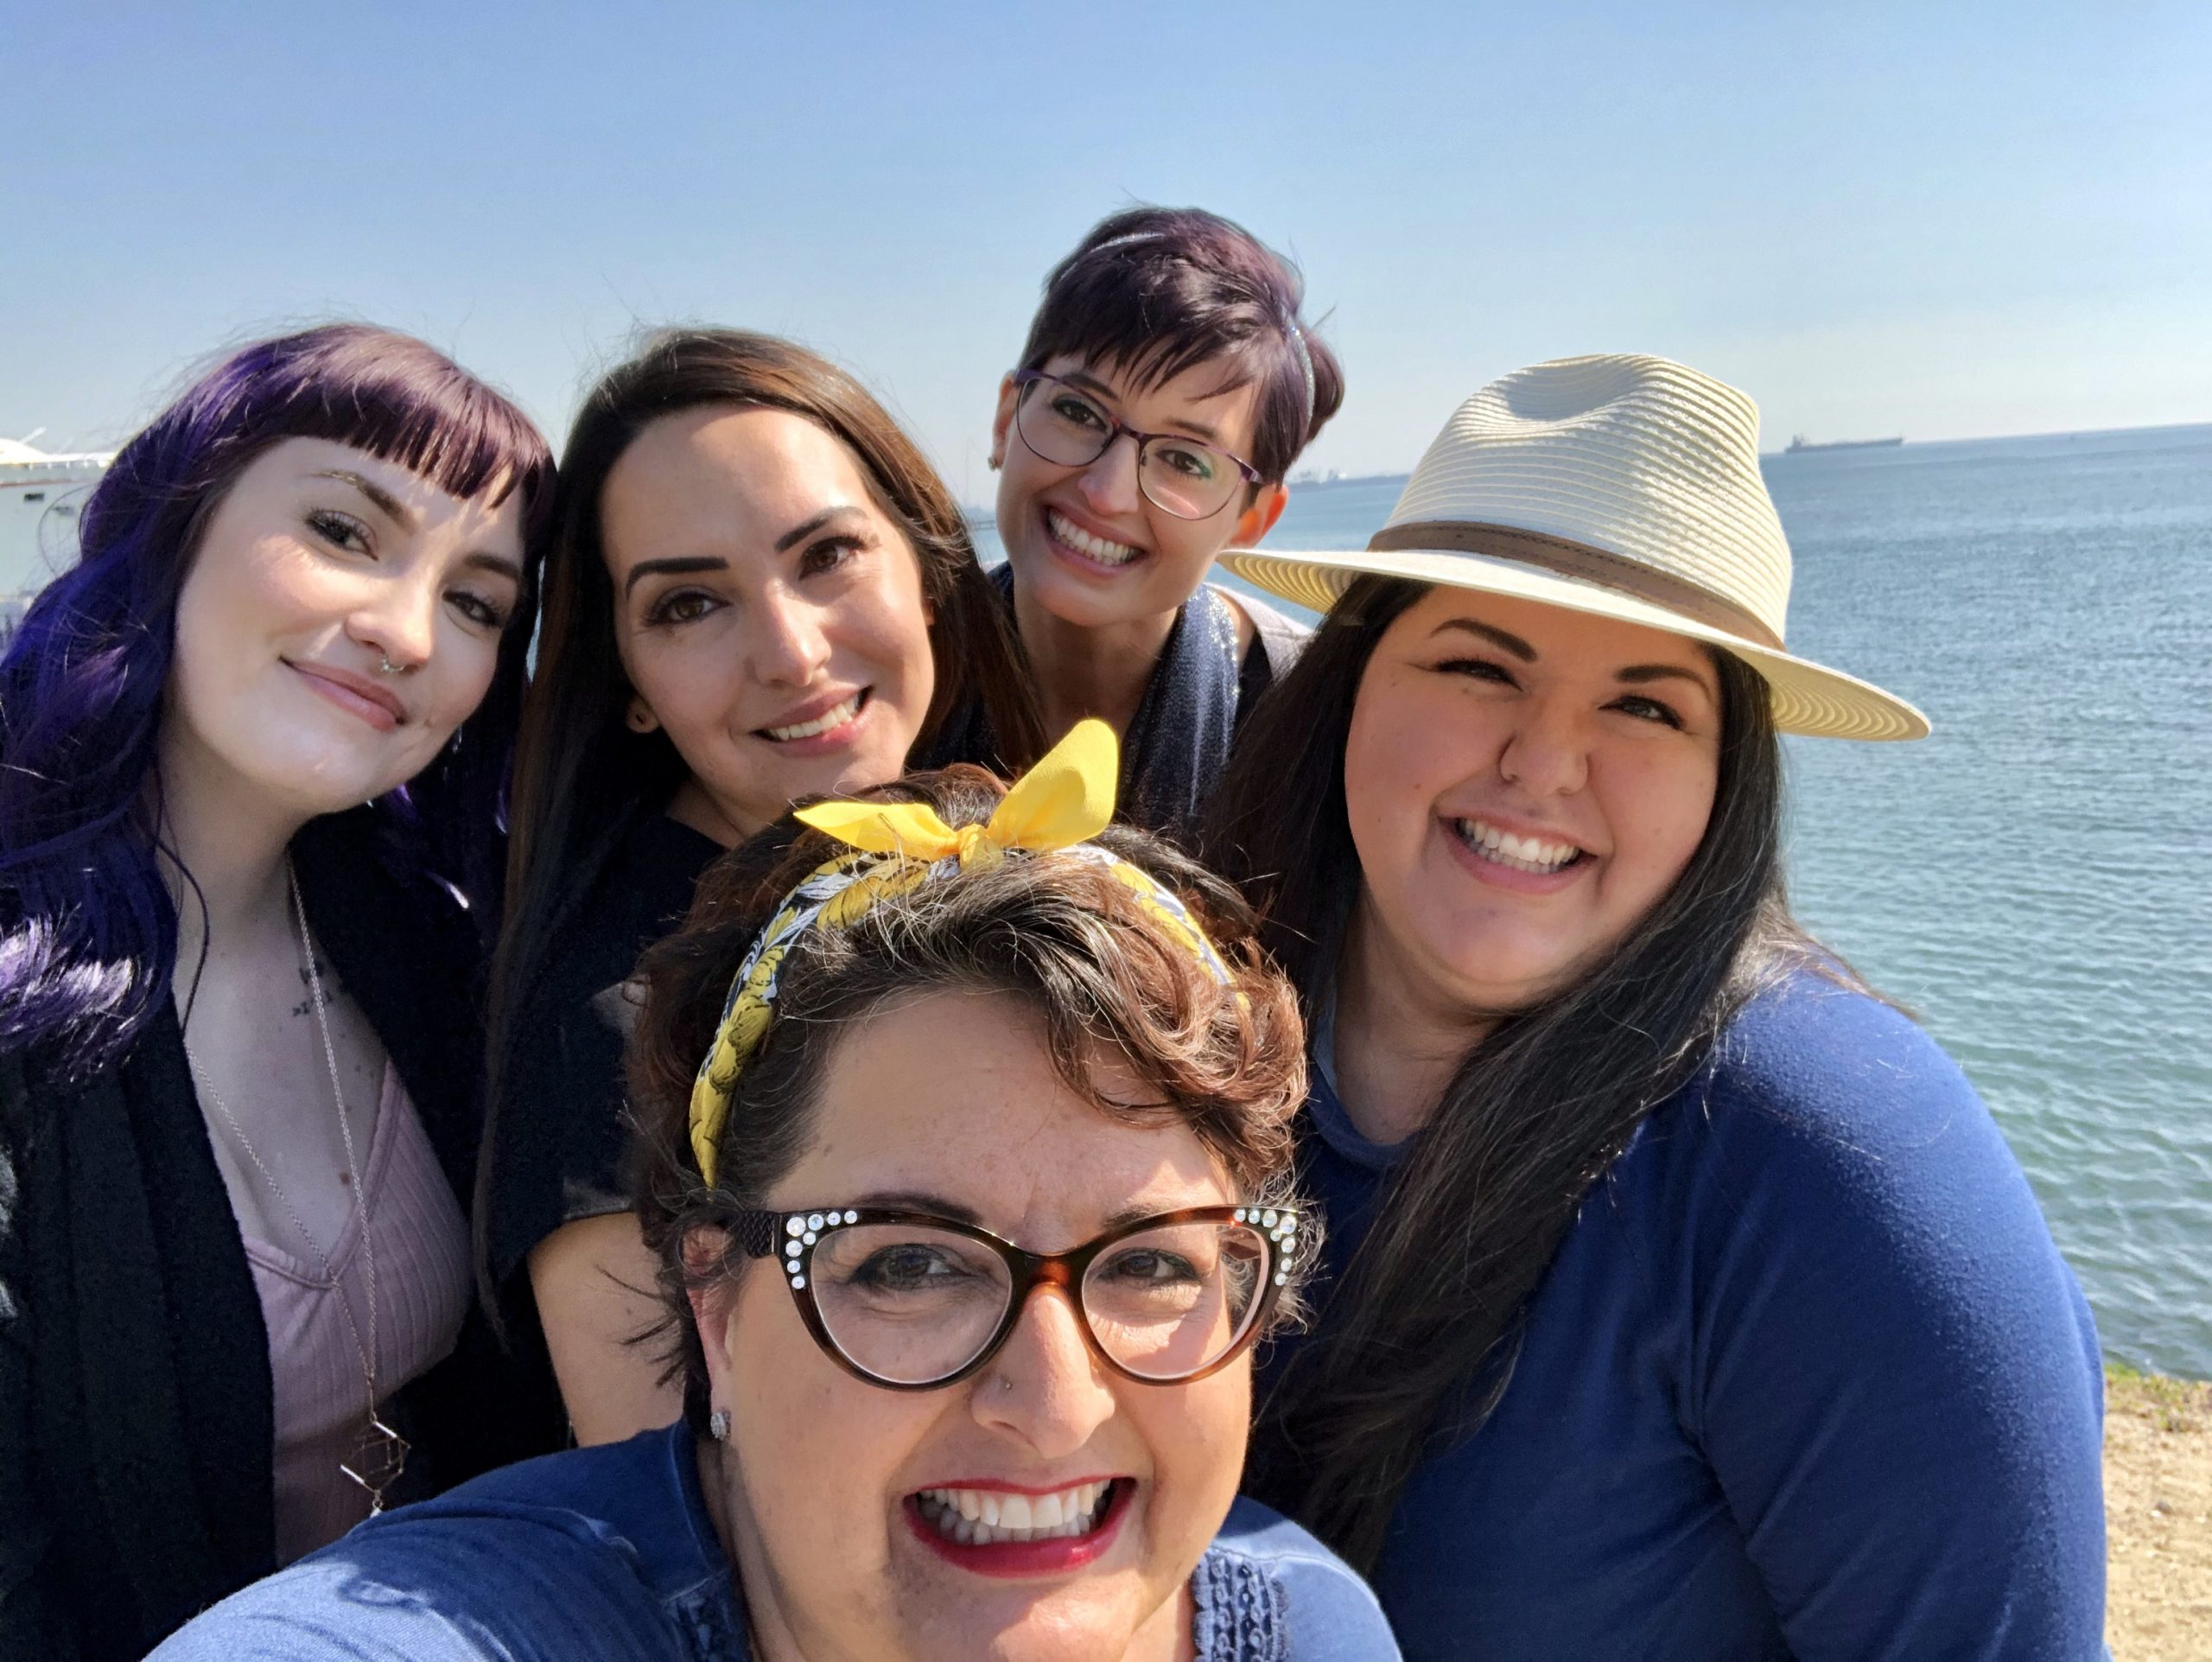 Selfie with four sisters and their mom in front, smiling in Long Beach.